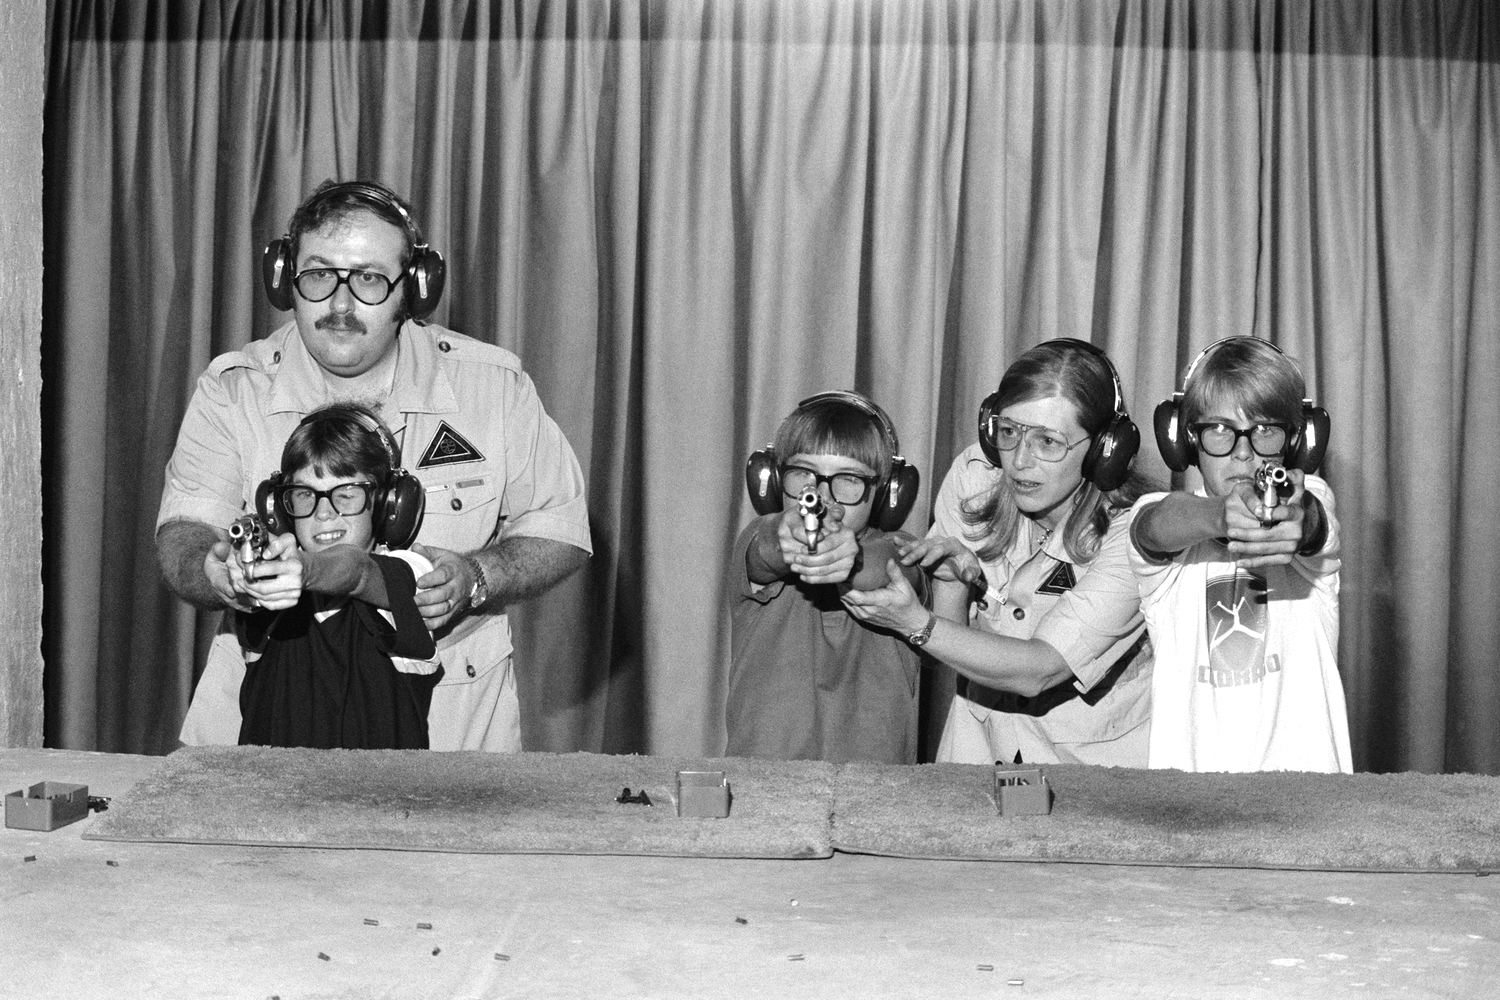 Children are taught how to handle firearms at a special school in College Station, TX, created by retired colonel Sid Loveless. June 1981 © Jean-Pierre Laffont